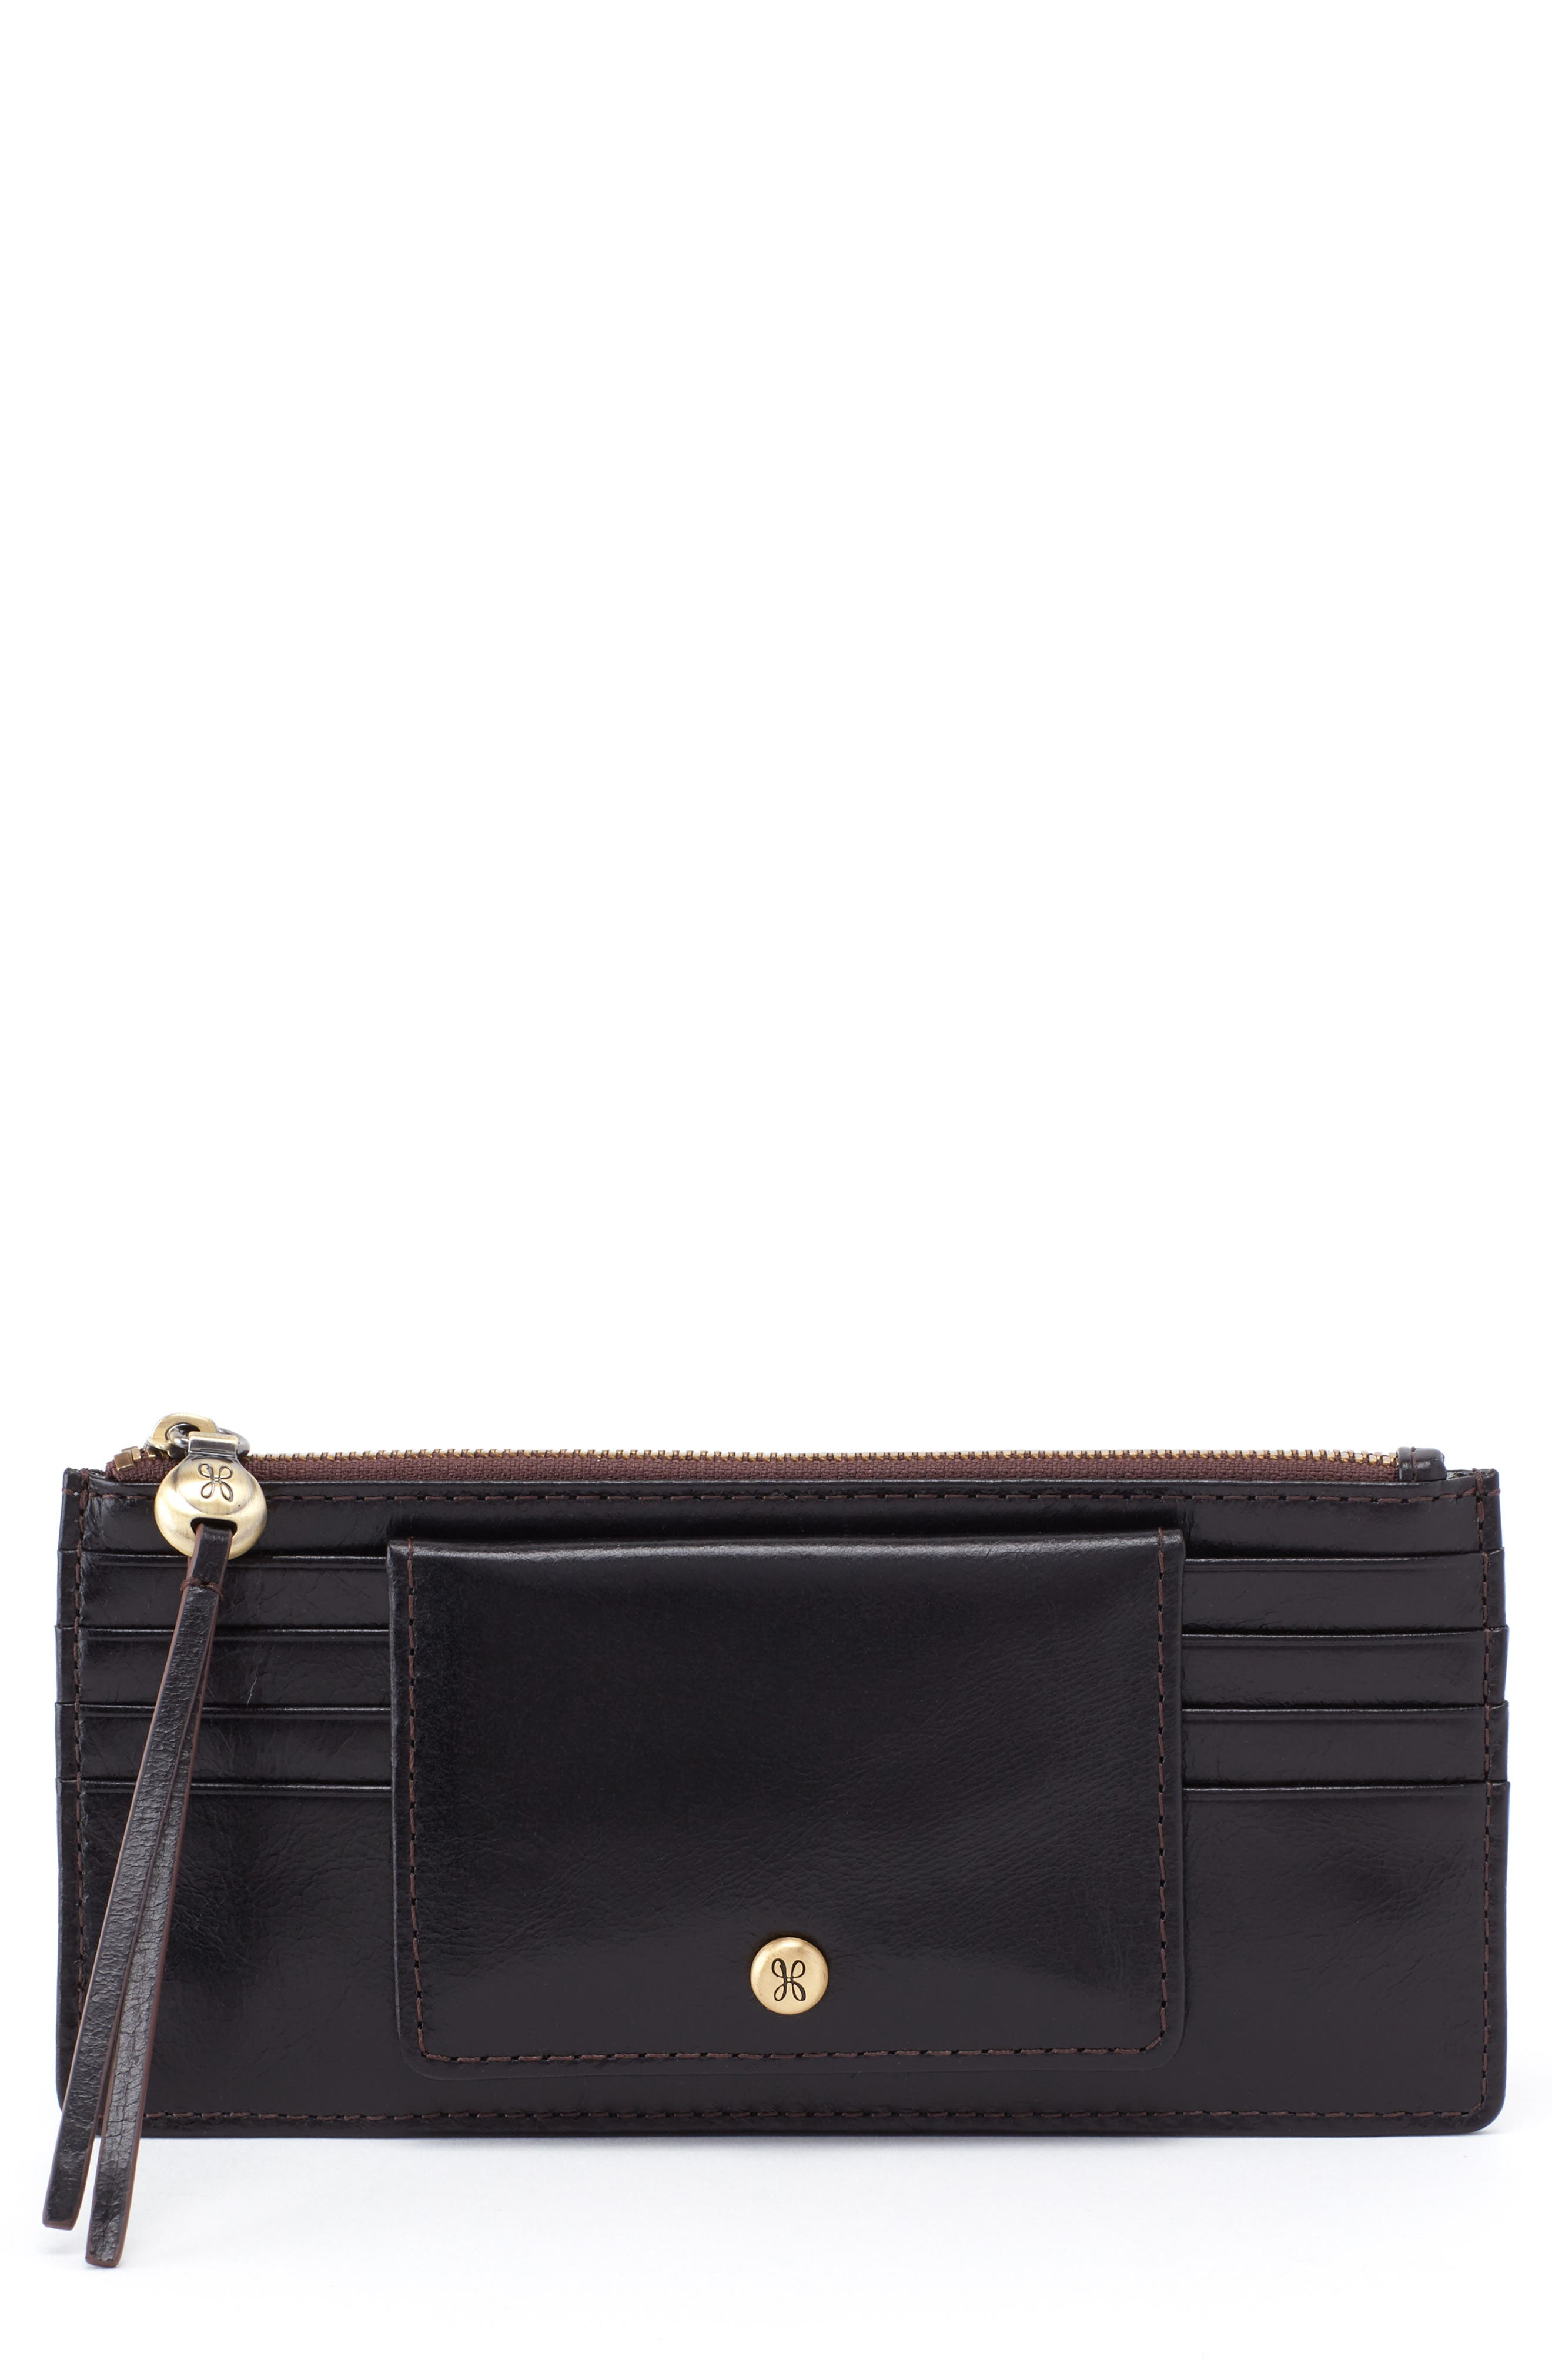 Amaze  Wallet,                         Main,                         color, BLACK